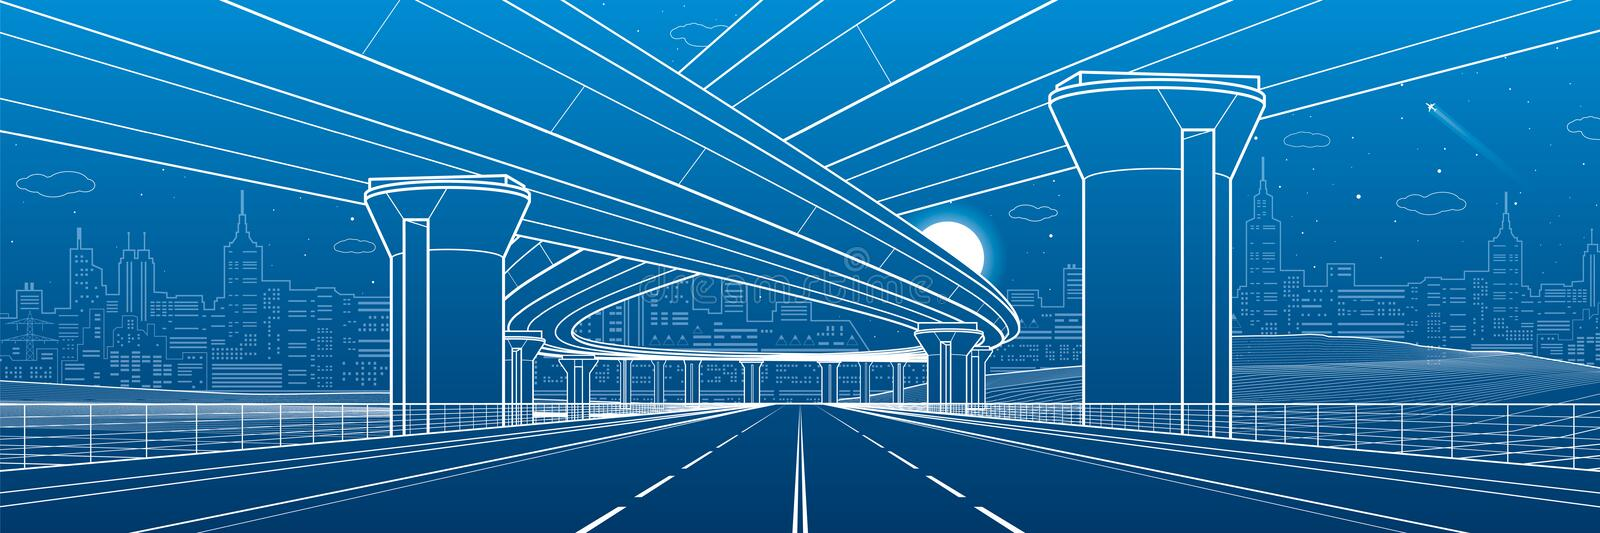 City architecture and infrastructure illustration, automotive overpass, big bridges, urban scene. Night town. White lines on blue. Background. Vector design art vector illustration